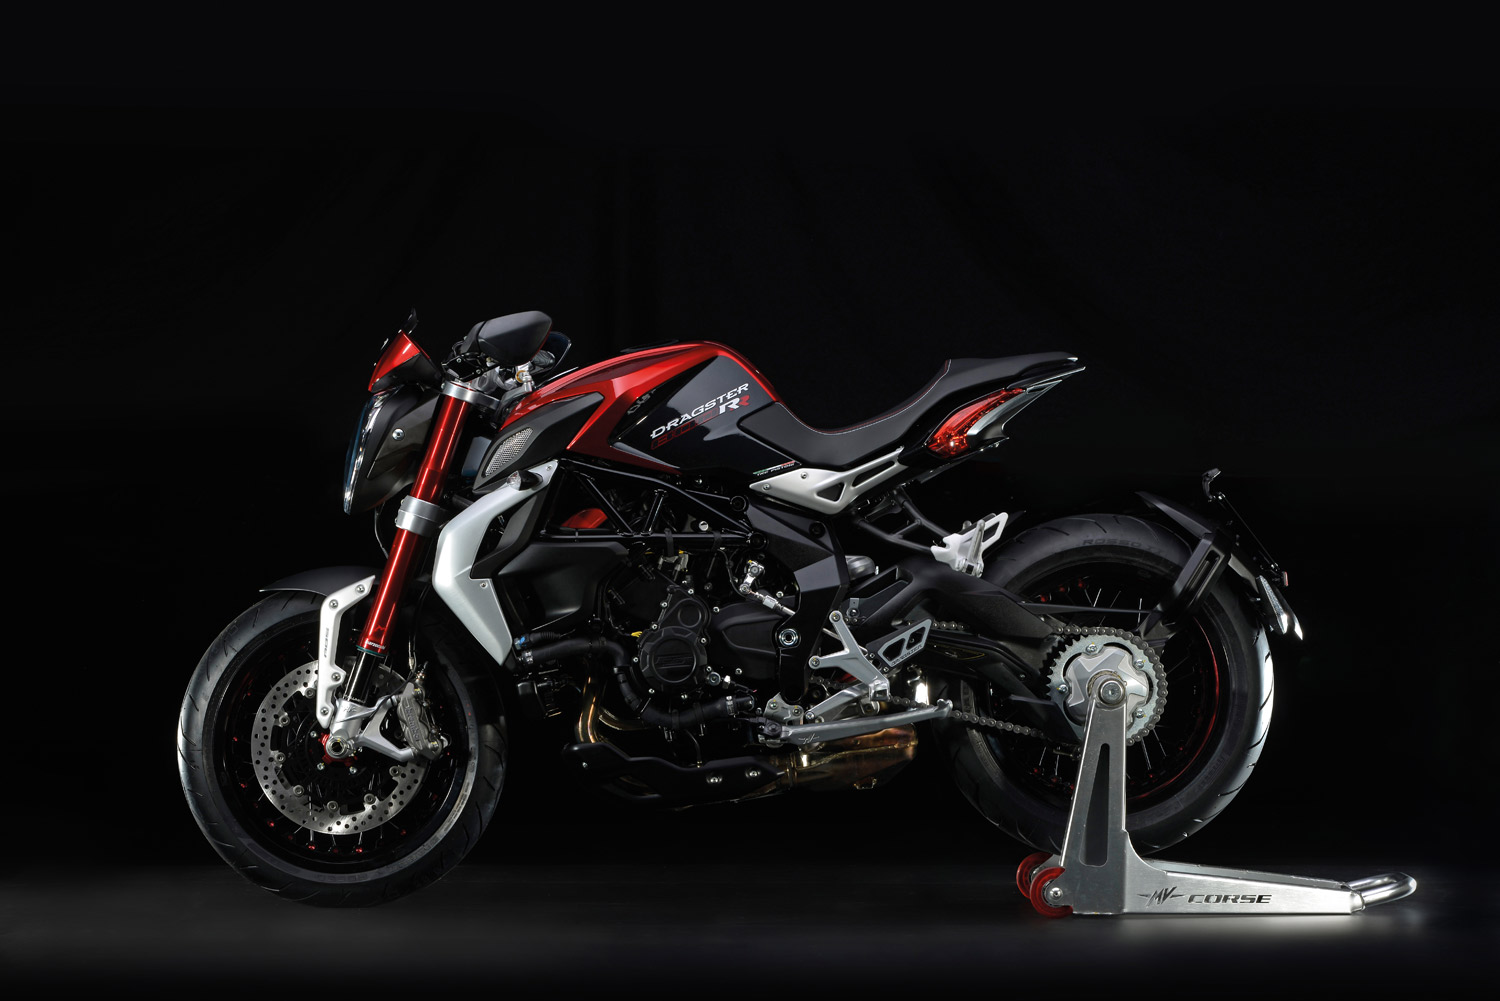 2016 MV Agusta Brutale 800 Dragster RR Price and Specs